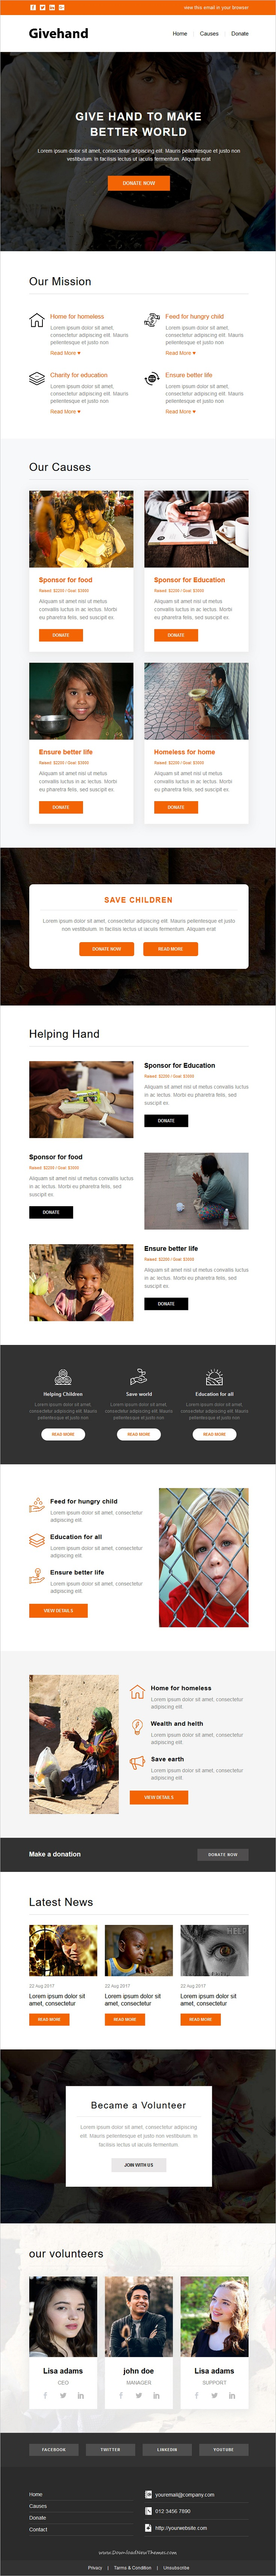 givehand charity nonprofit newsletter template stampready